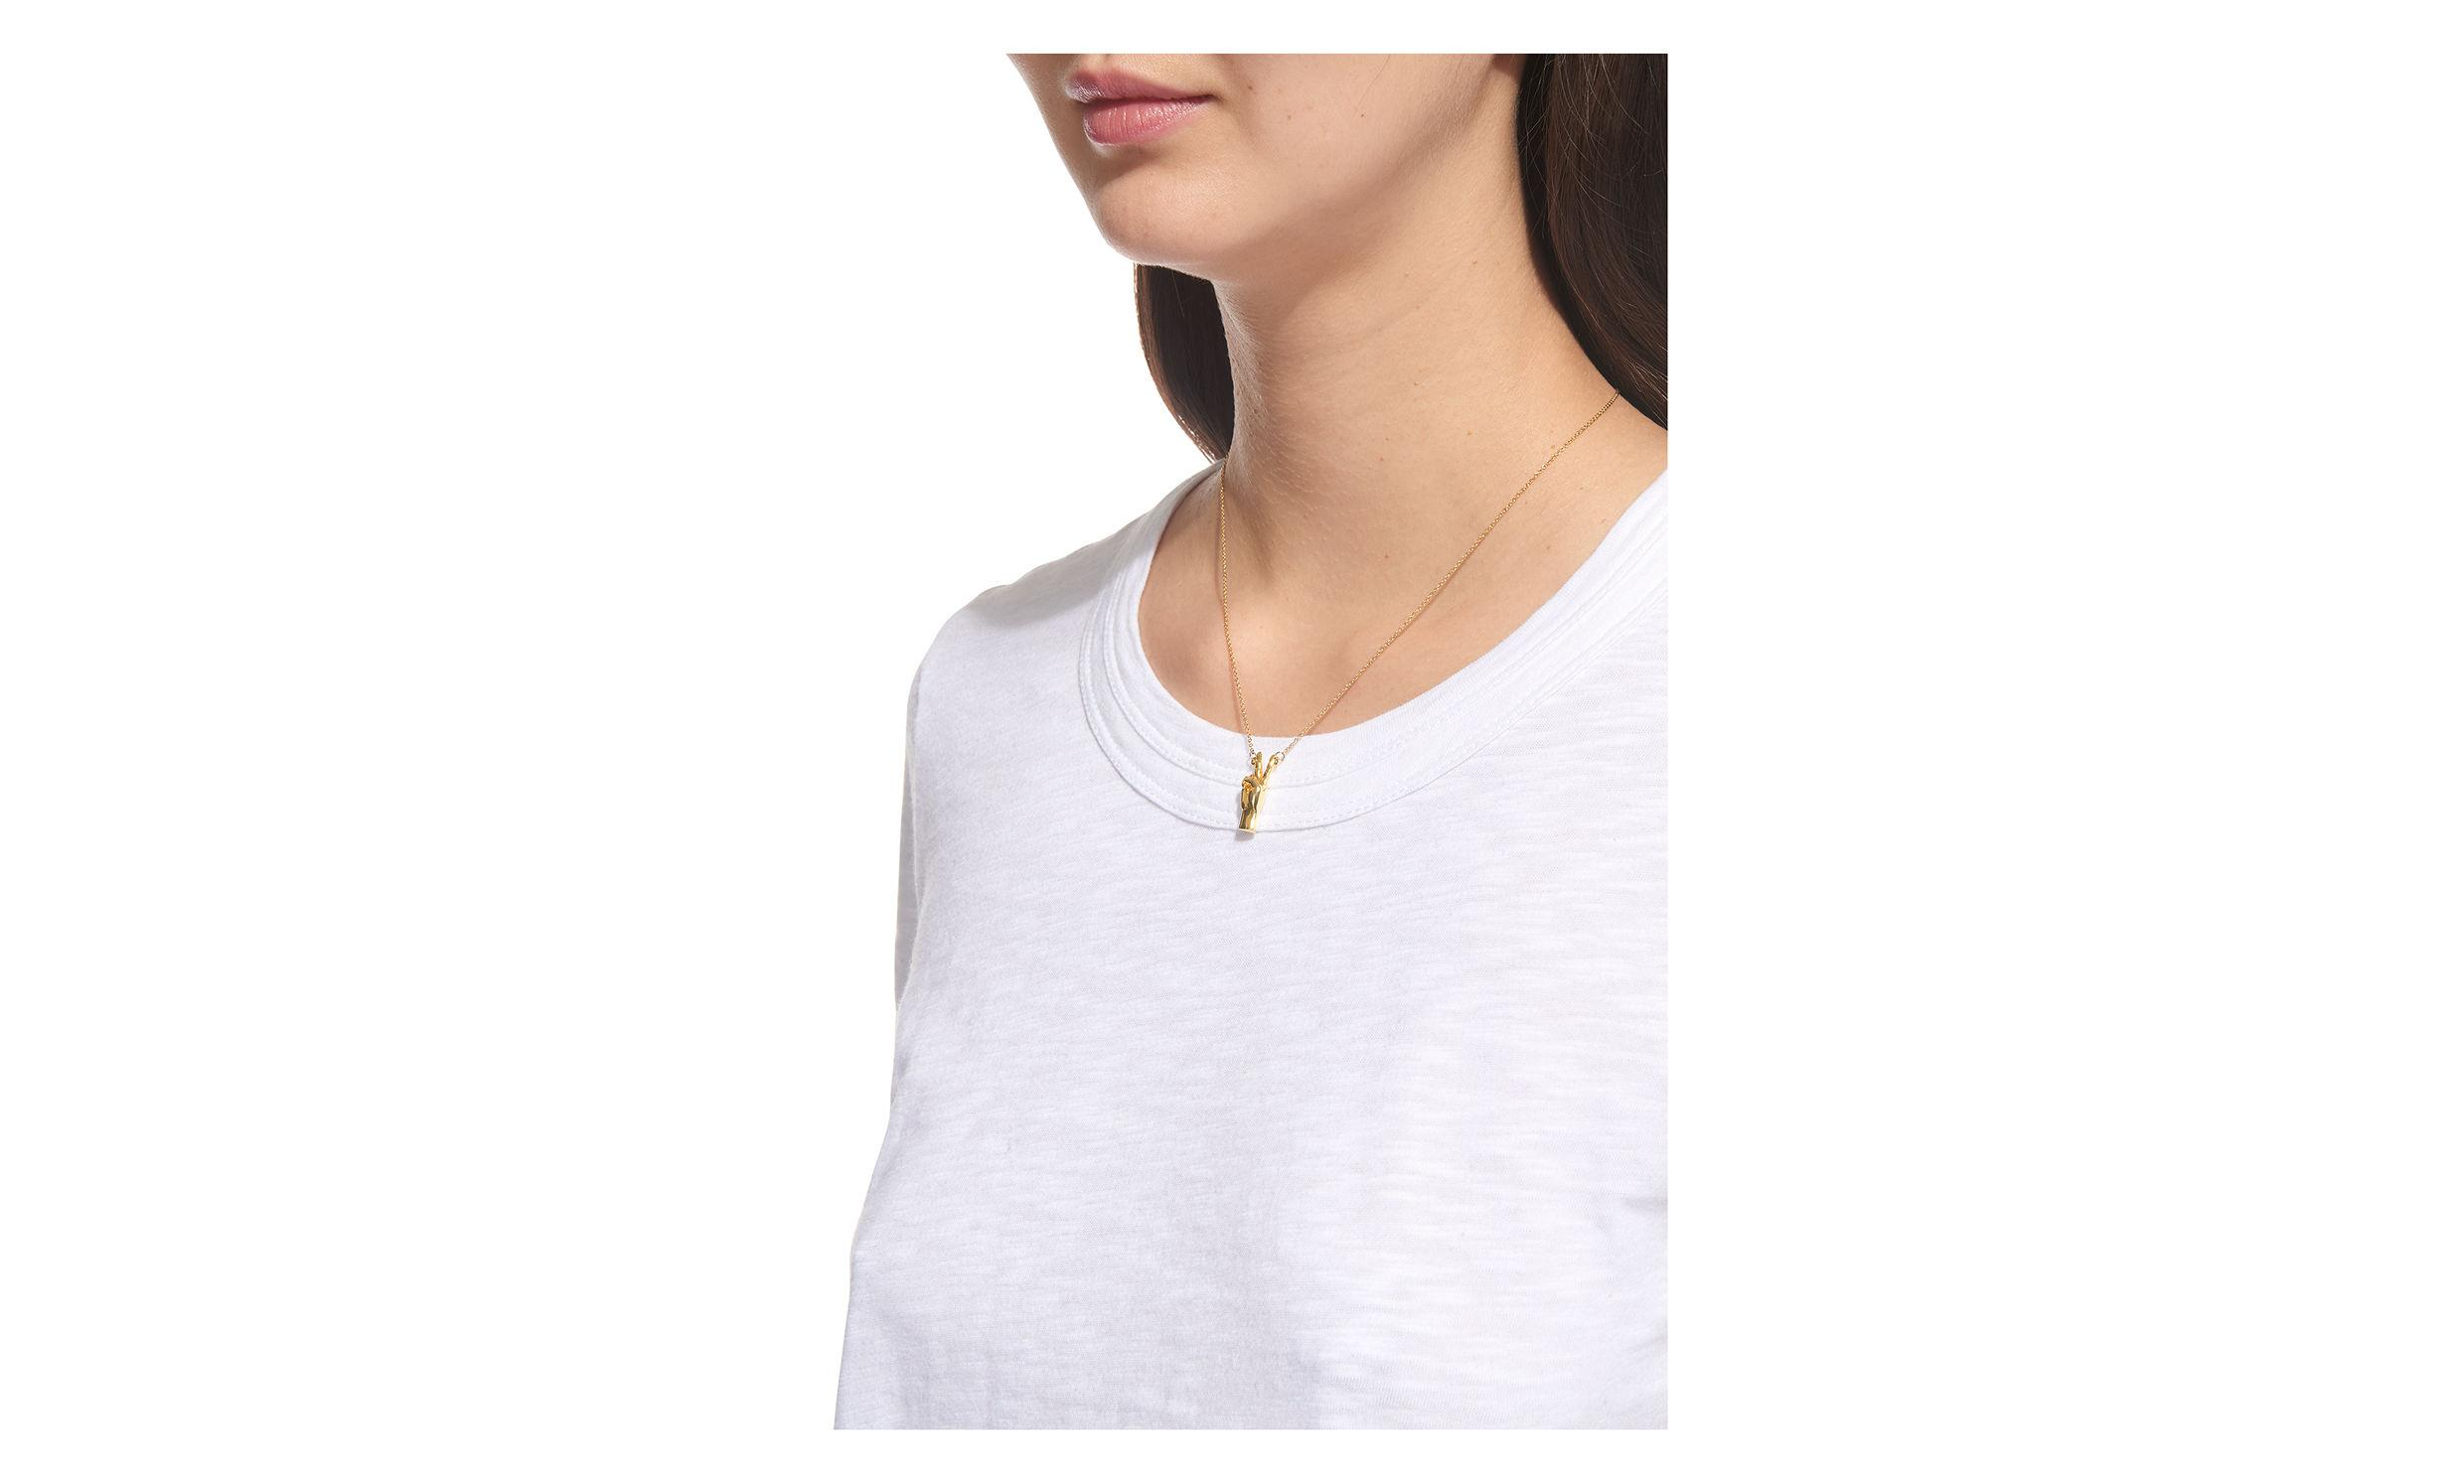 Whistles Peace Out Necklace in Gold (Metallic)